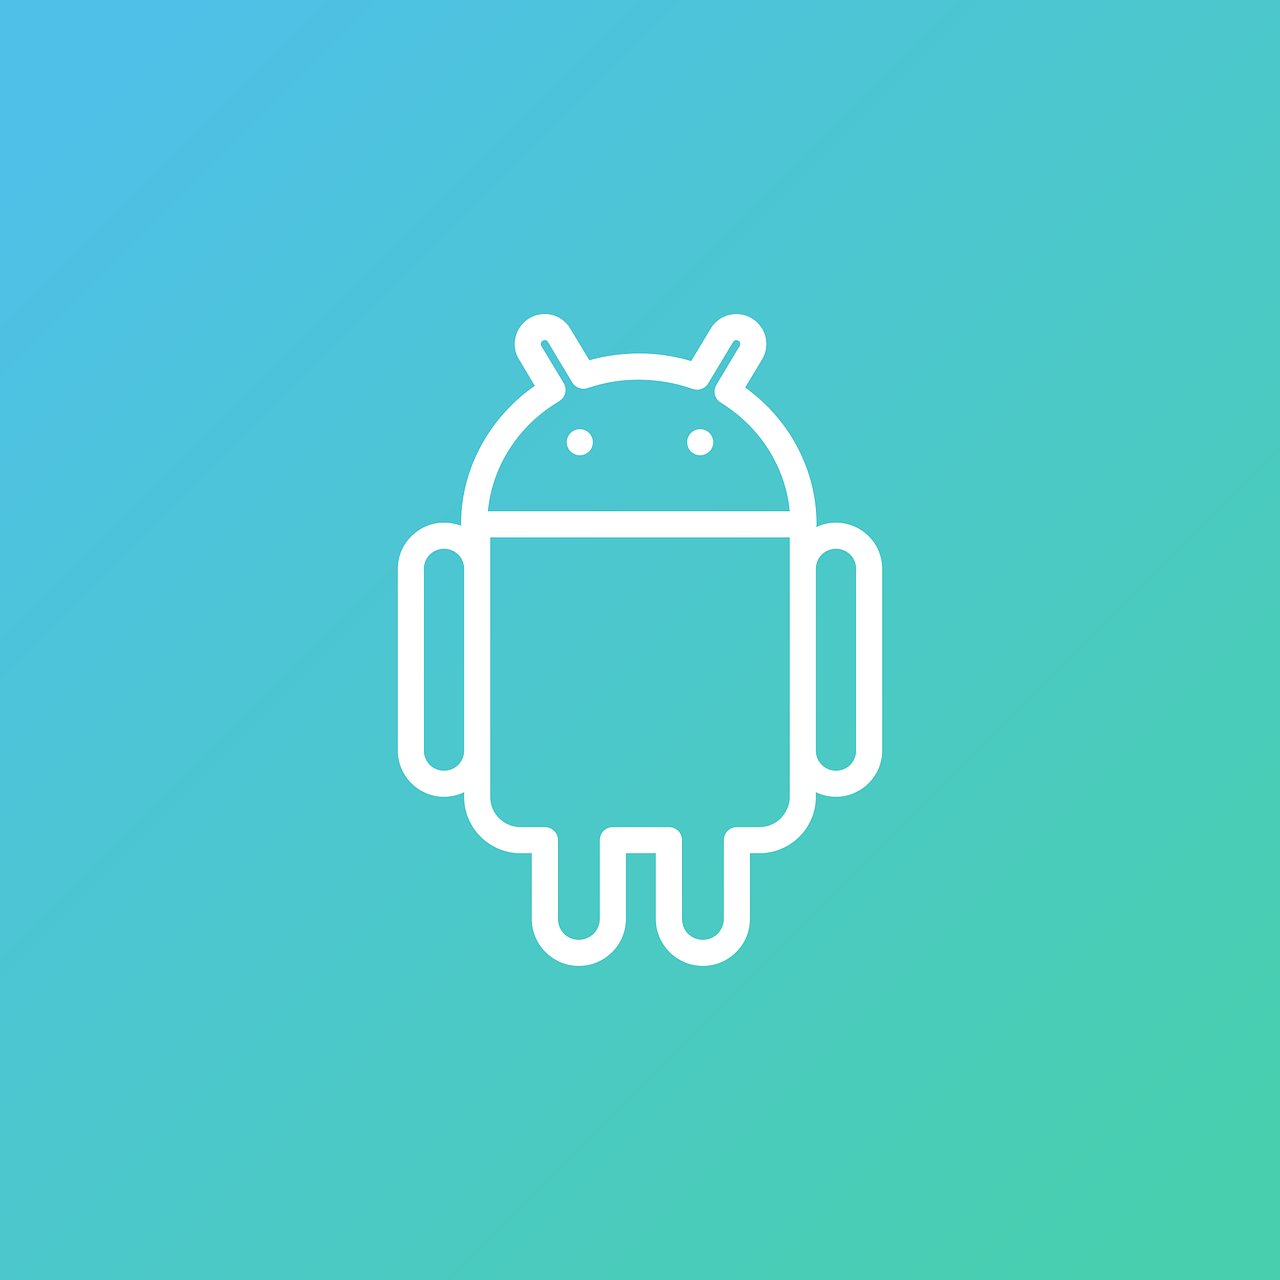 Google's data charts path to avoiding malware on Android